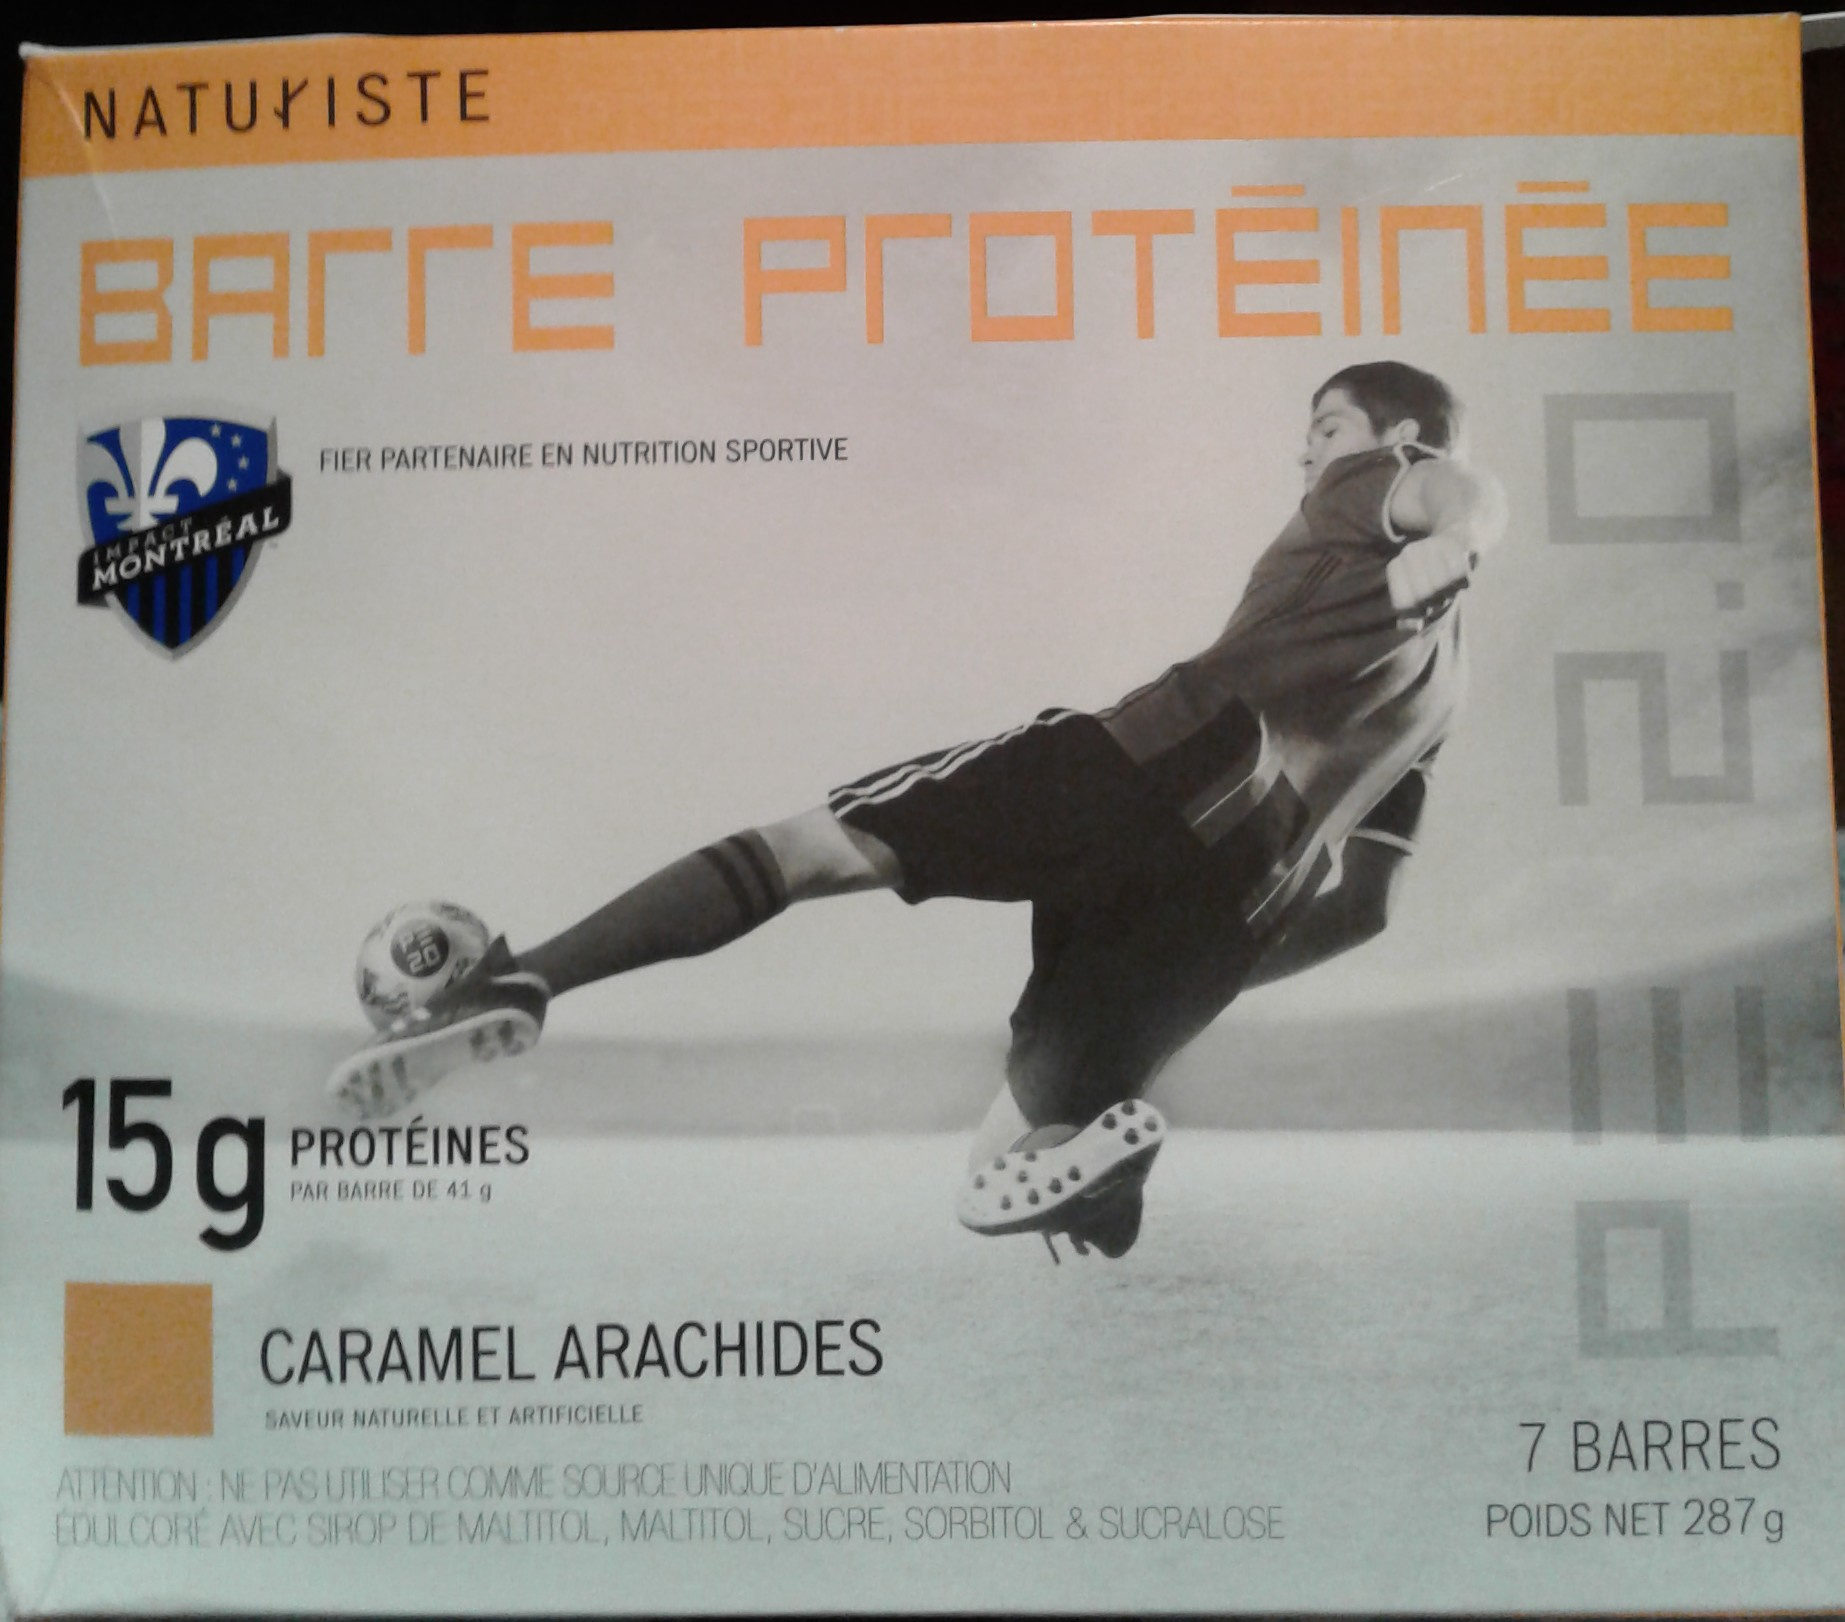 Barre  proteinée - Product - fr